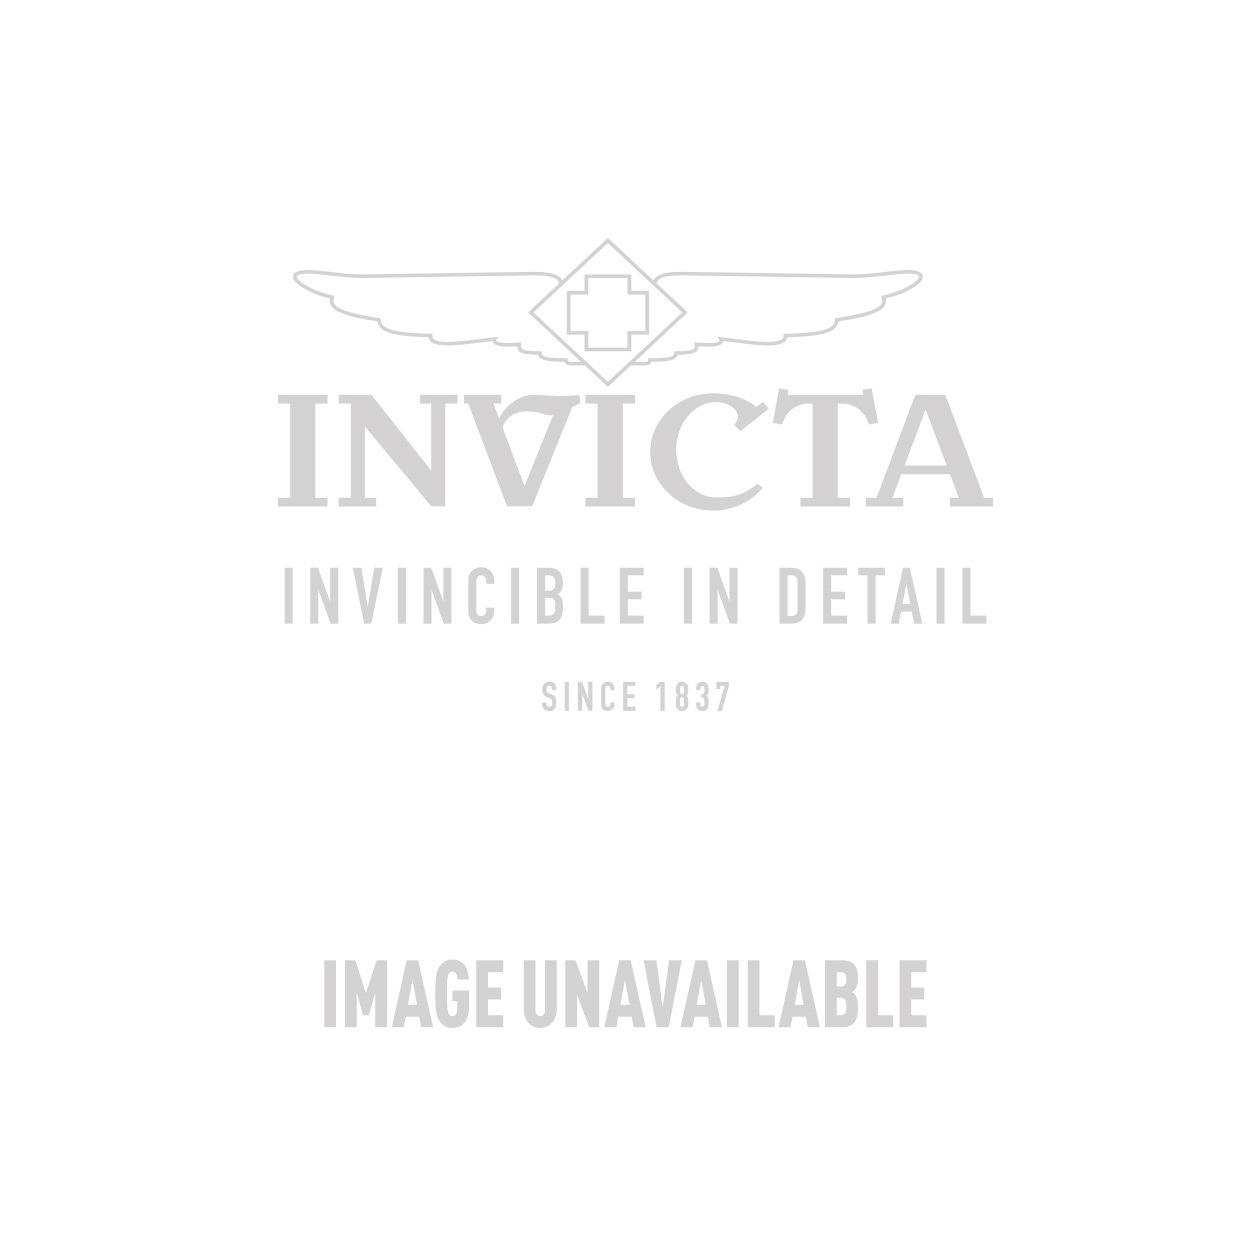 Invicta S1 Rally Quartz Watch - Stainless Steel case Stainless Steel band -  Model 10560